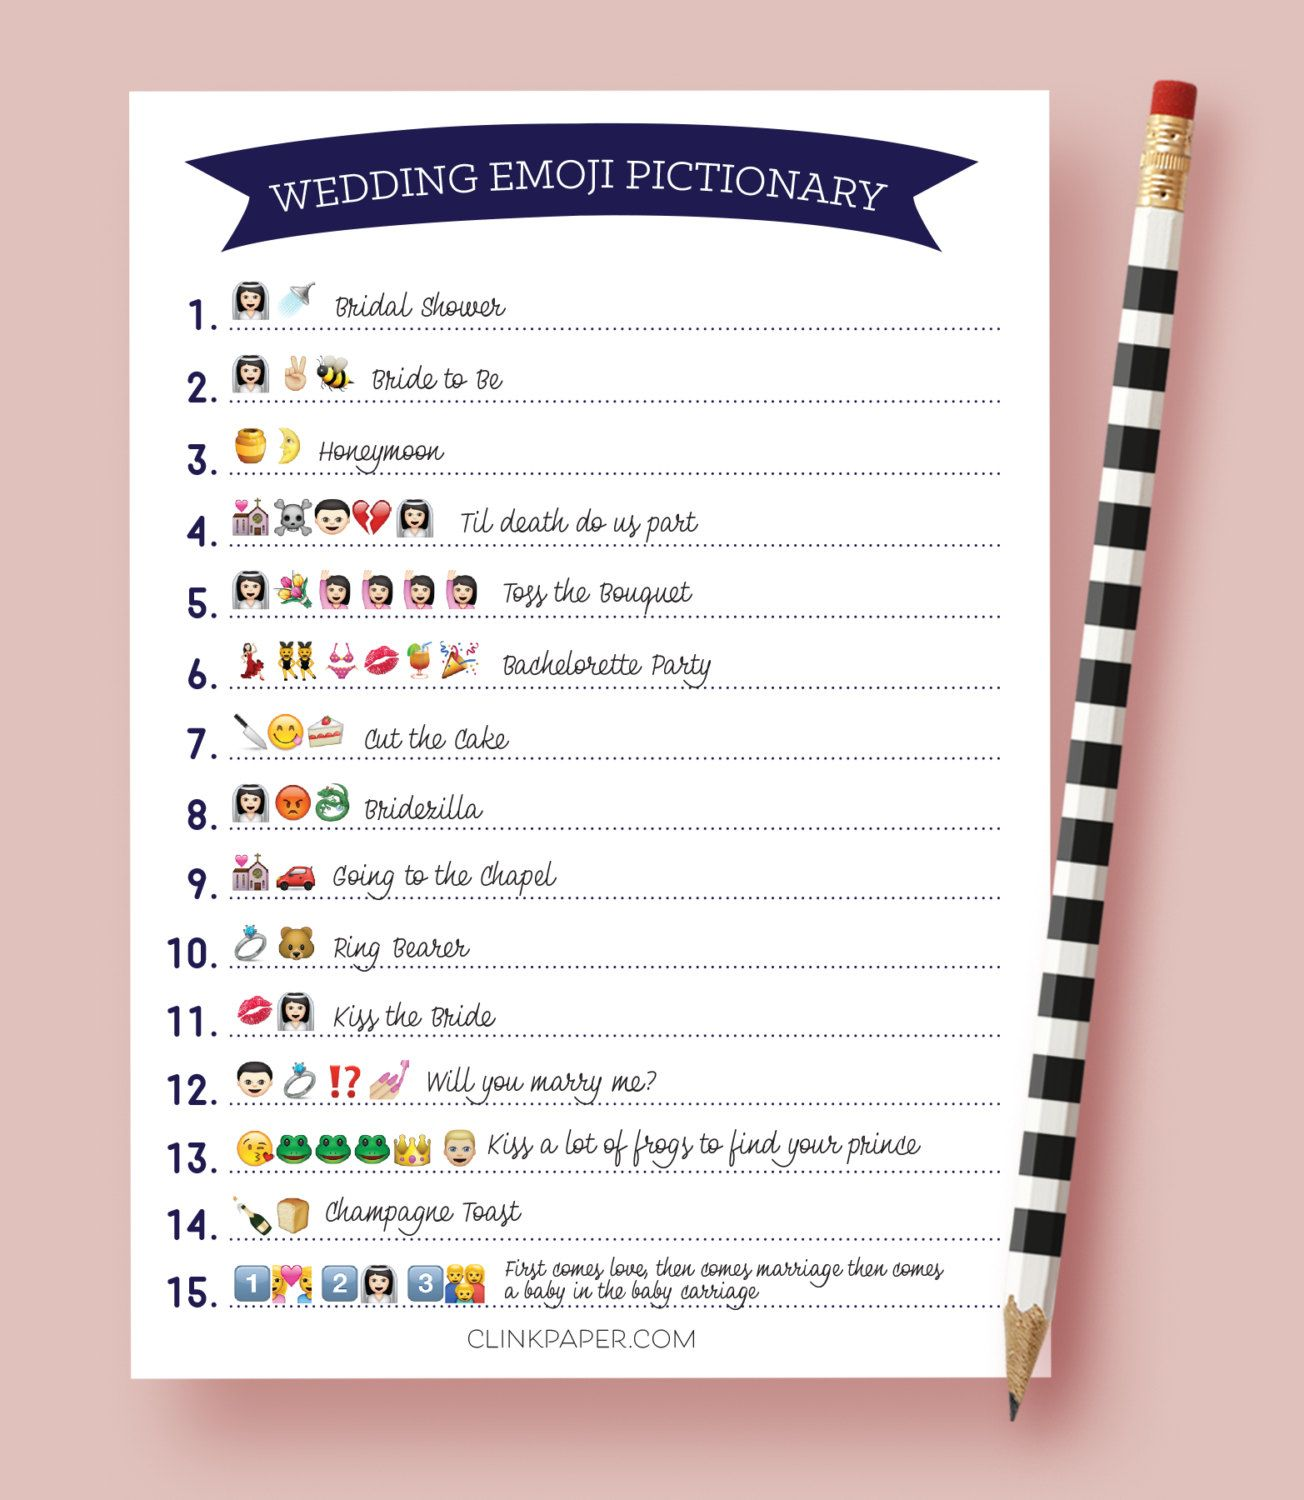 image about Emoji Bridal Shower Game Free Printable named The Initial Marriage ceremony Emoji Pictionary- Bridal Shower Sport